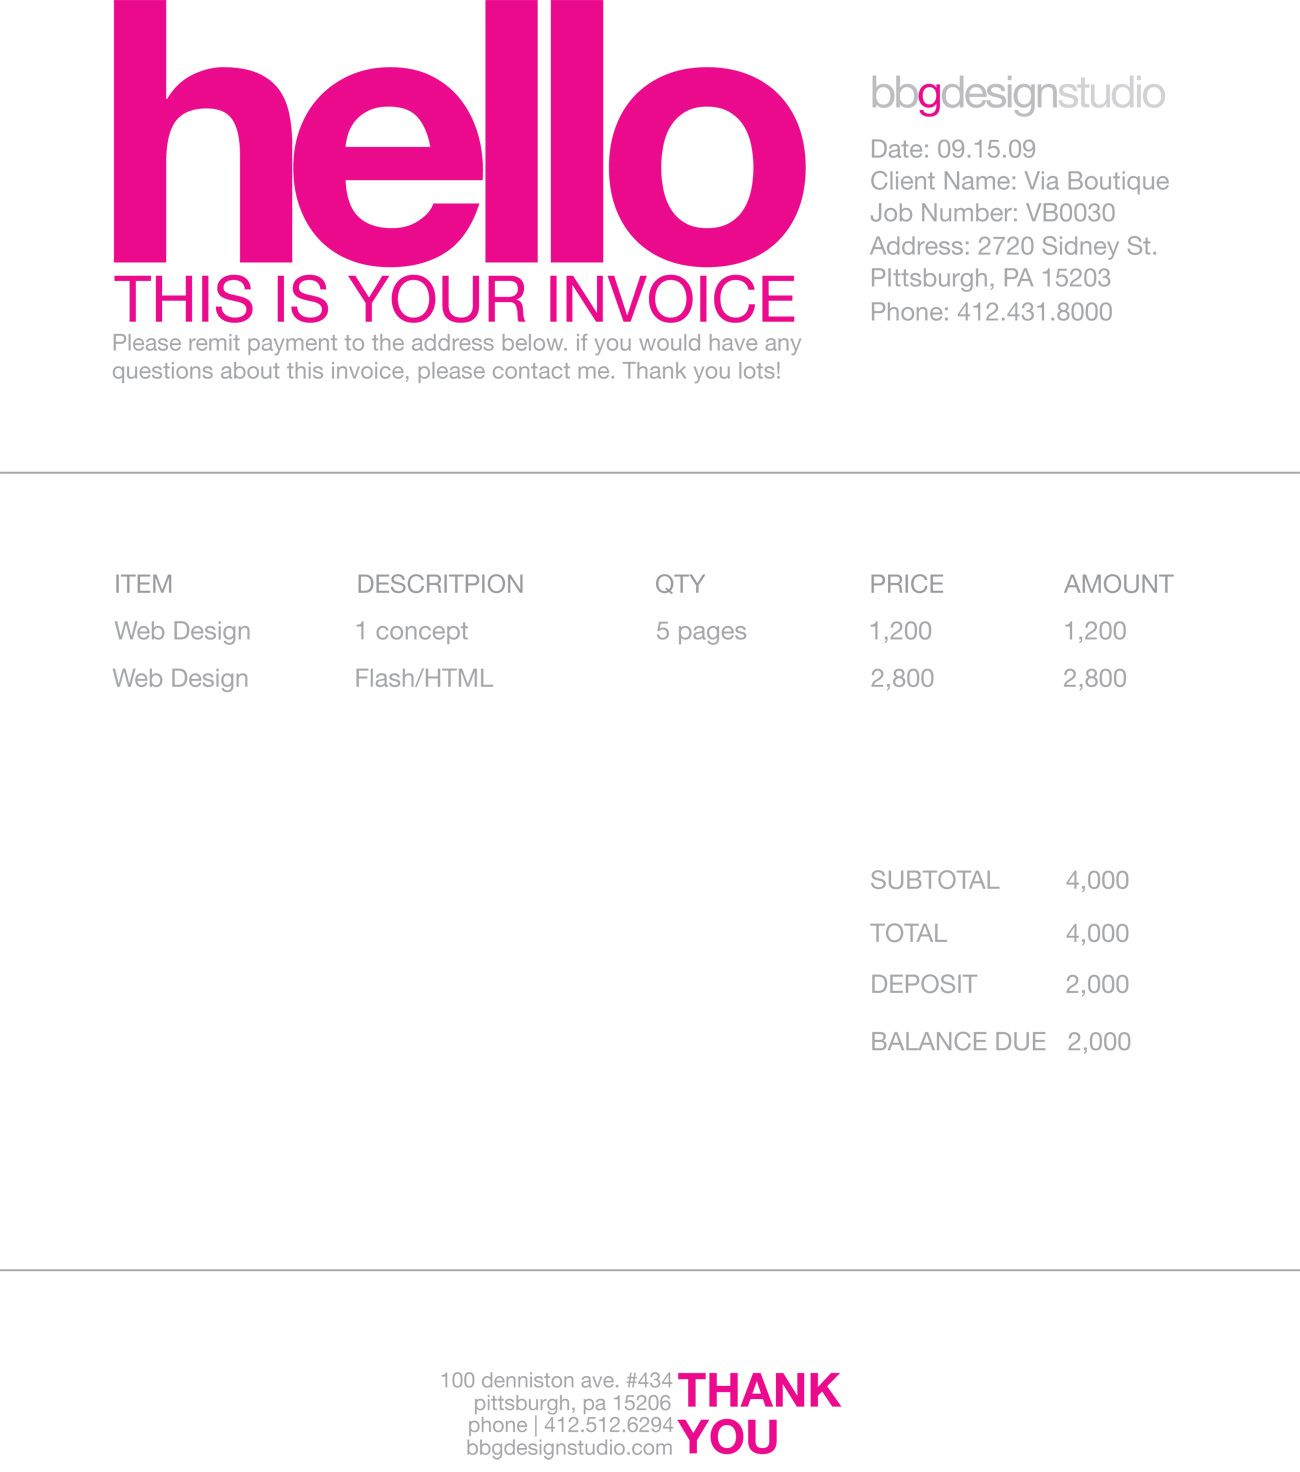 Coachoutletonlineplusus  Winsome  Images About Invoice Design On Pinterest With Marvelous Instant Invoice Besides Create An Invoice For Free Furthermore Tnt Commercial Invoice With Agreeable Invoice For Photography Also Free Invoice Templates Word In Addition Best Invoice Software For Small Business Free And How To Find Car Dealer Invoice Price As Well As Freelance Designer Invoice Additionally What Is Invoice Pricing From Pinterestcom With Coachoutletonlineplusus  Marvelous  Images About Invoice Design On Pinterest With Agreeable Instant Invoice Besides Create An Invoice For Free Furthermore Tnt Commercial Invoice And Winsome Invoice For Photography Also Free Invoice Templates Word In Addition Best Invoice Software For Small Business Free From Pinterestcom